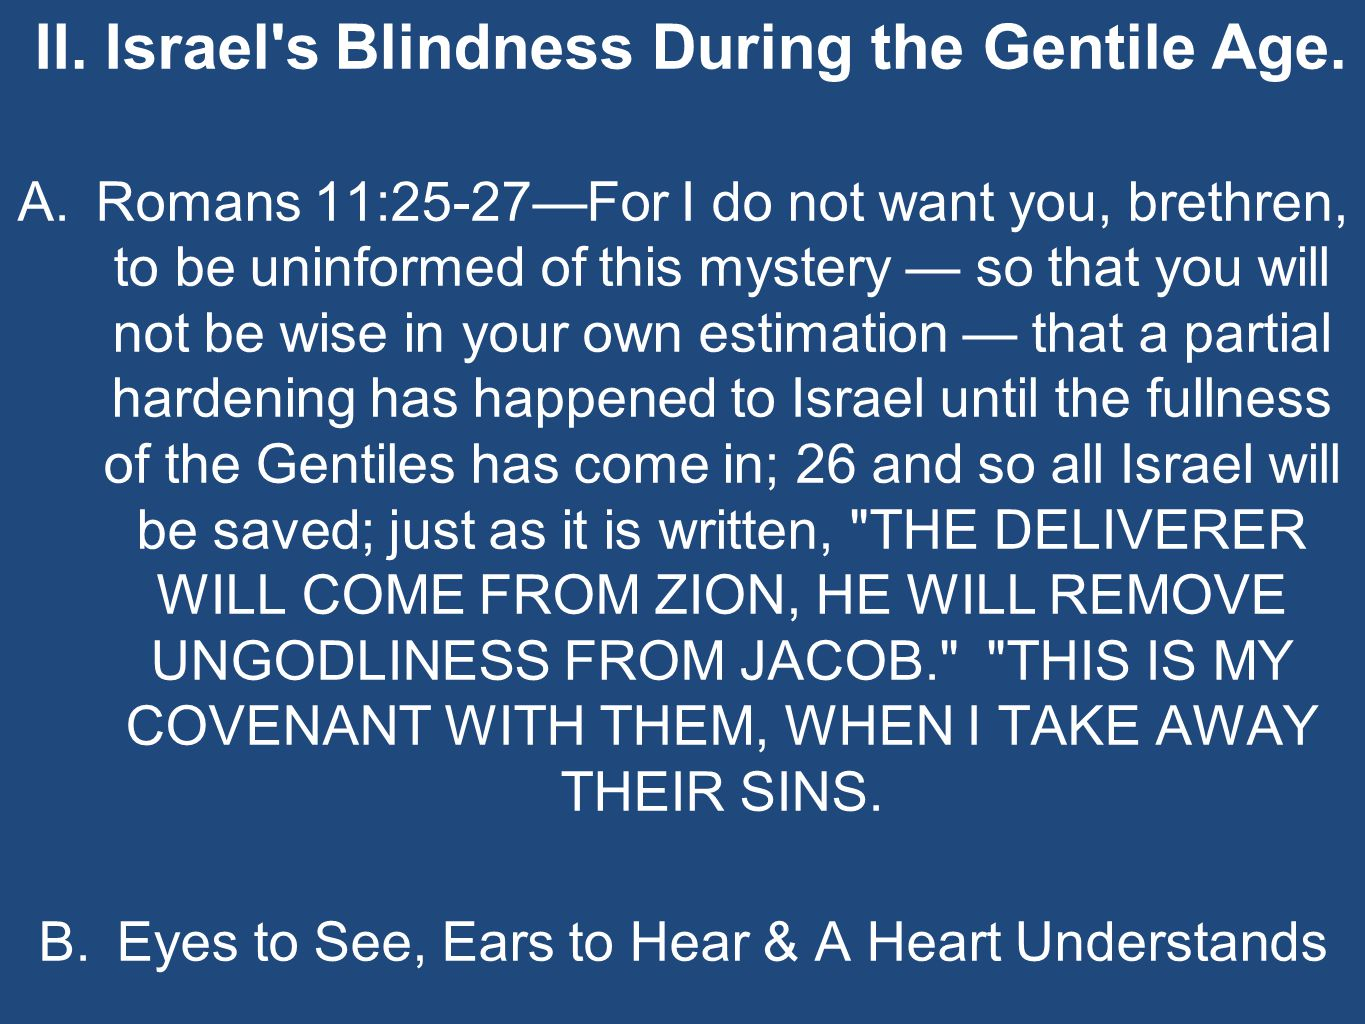 II. Israel s Blindness During the Gentile Age.